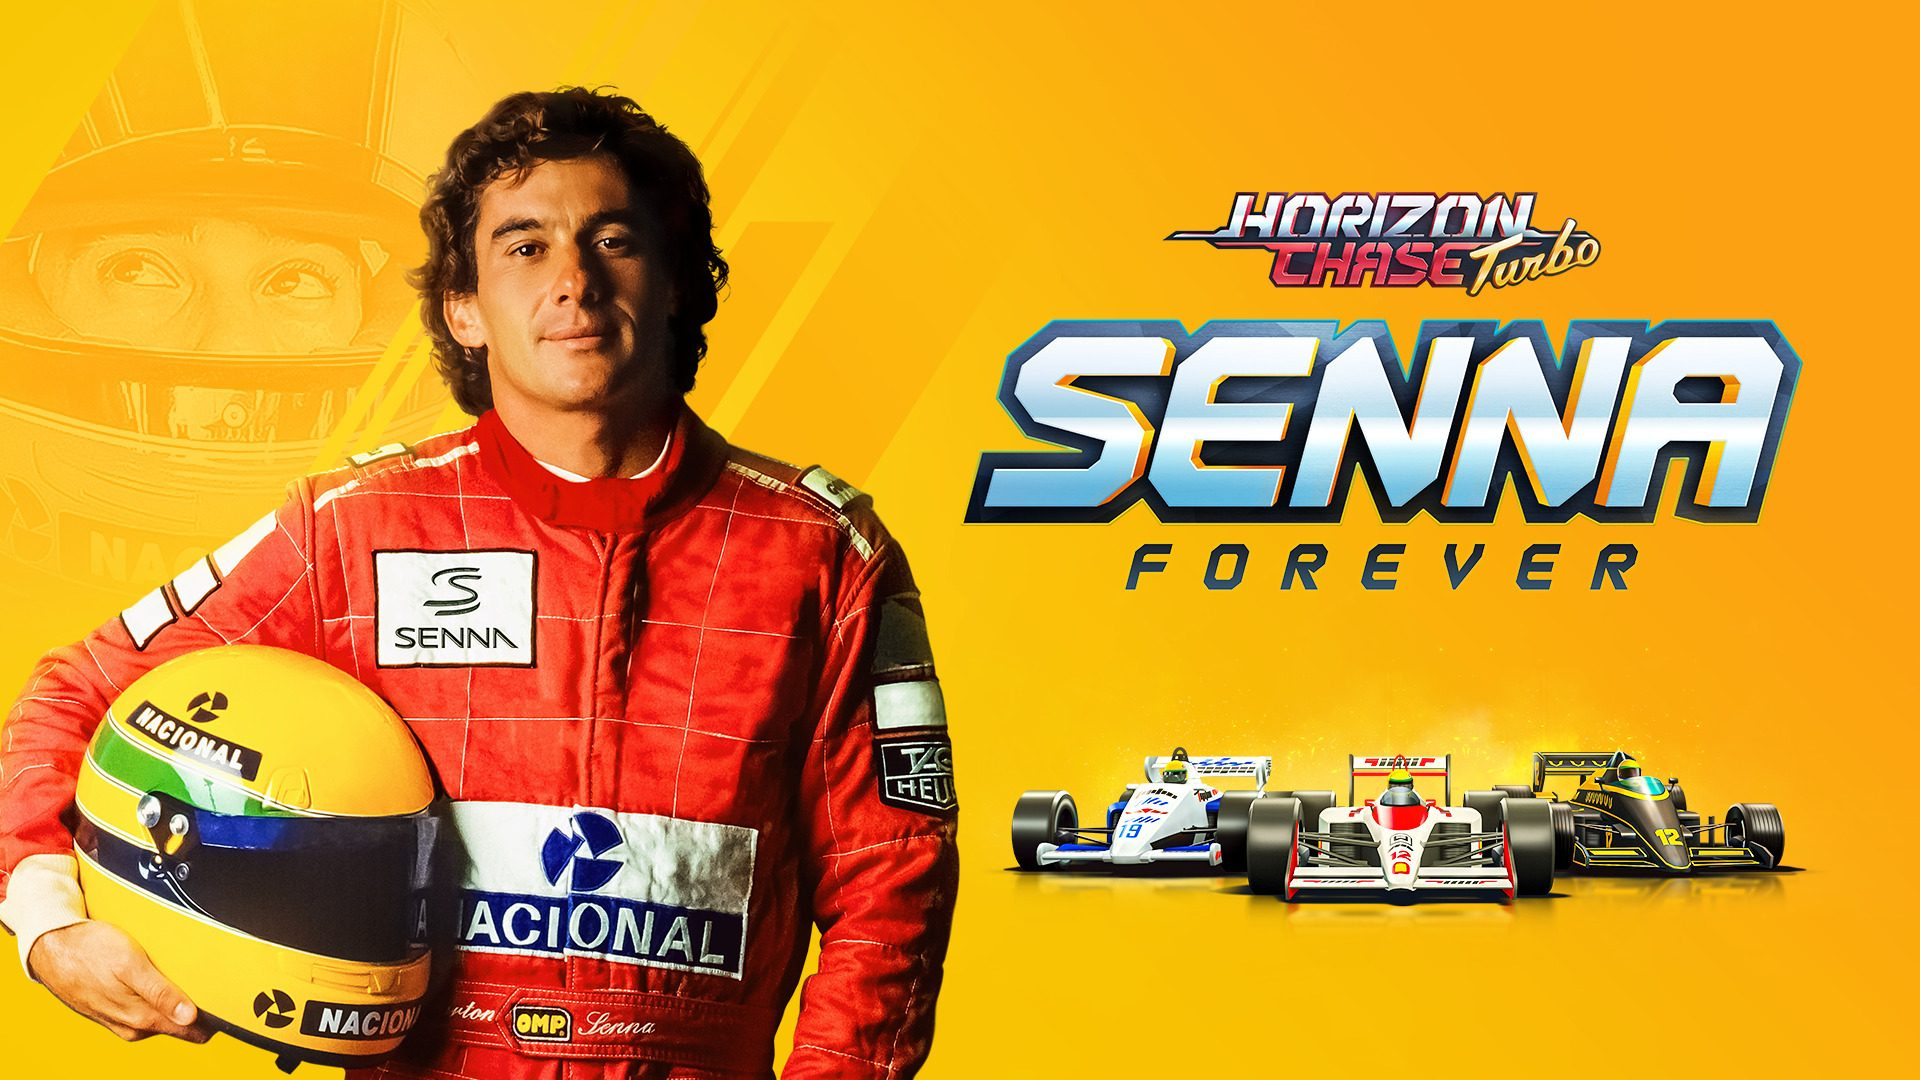 horizon-chase-turbo:-senna-without-end-growth-launches-oct-20